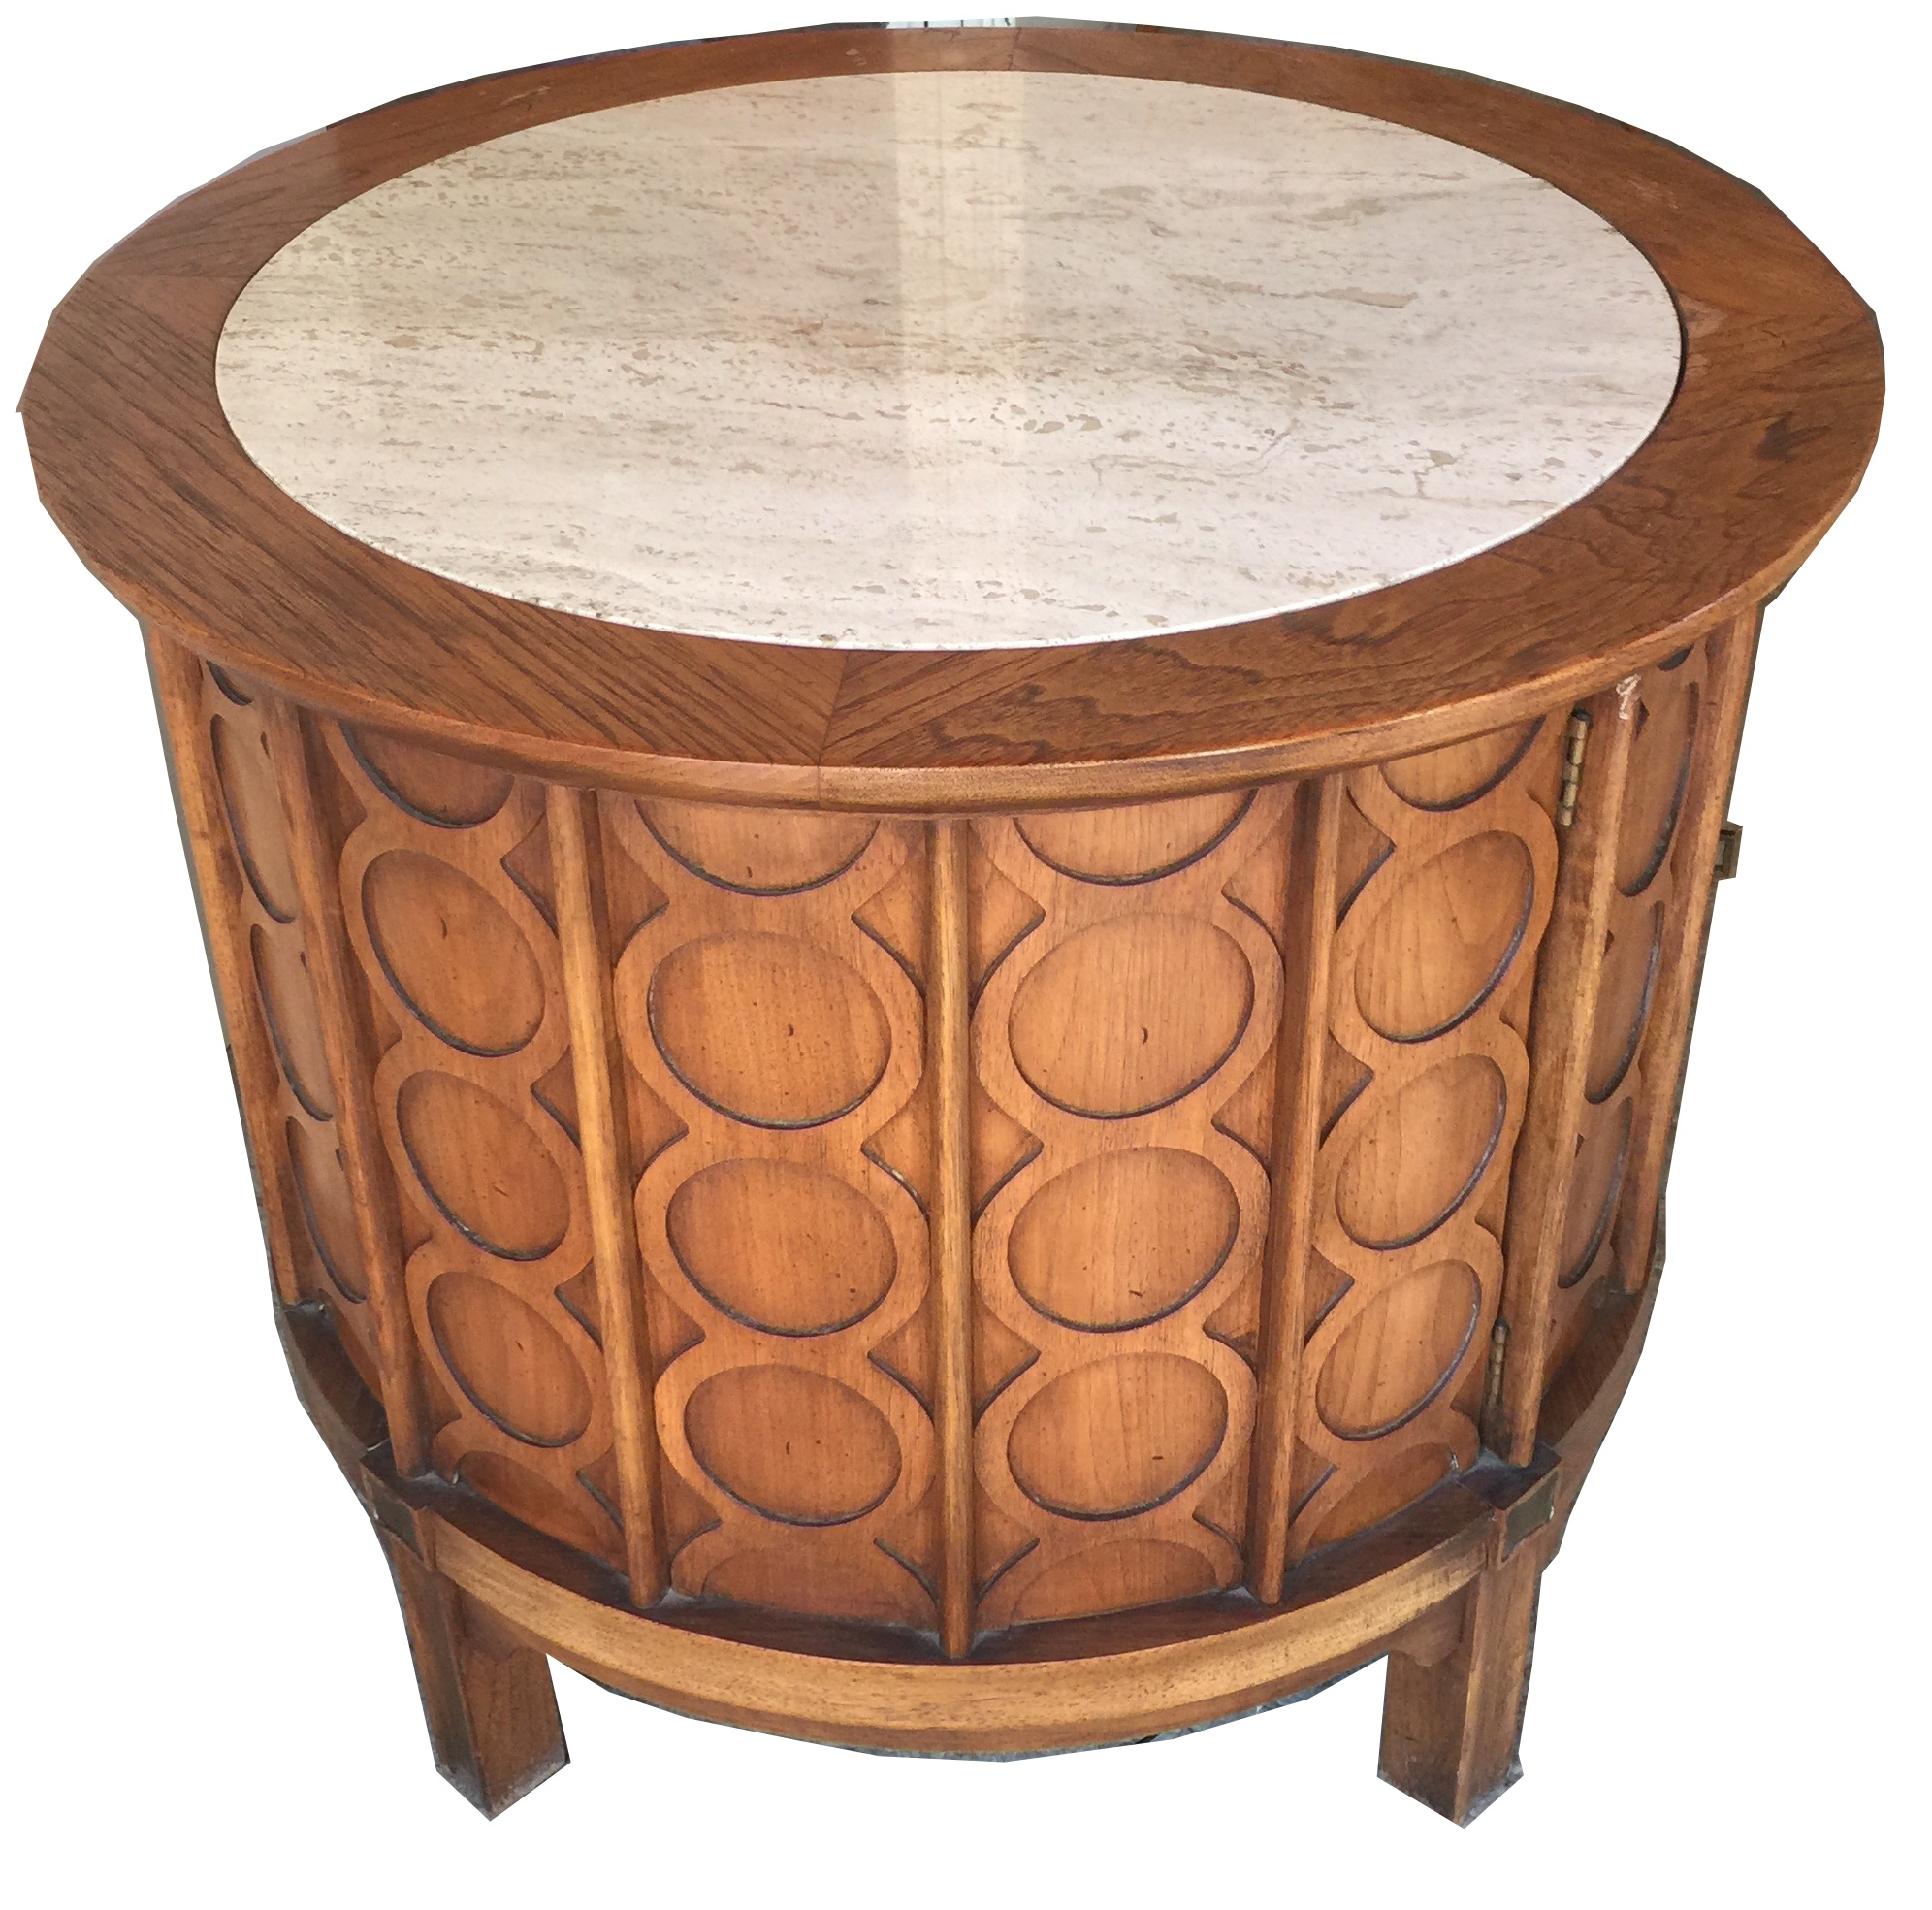 Thomasville Oval Coffee Table: Mid-Century Modern Round Travertine Top Commode